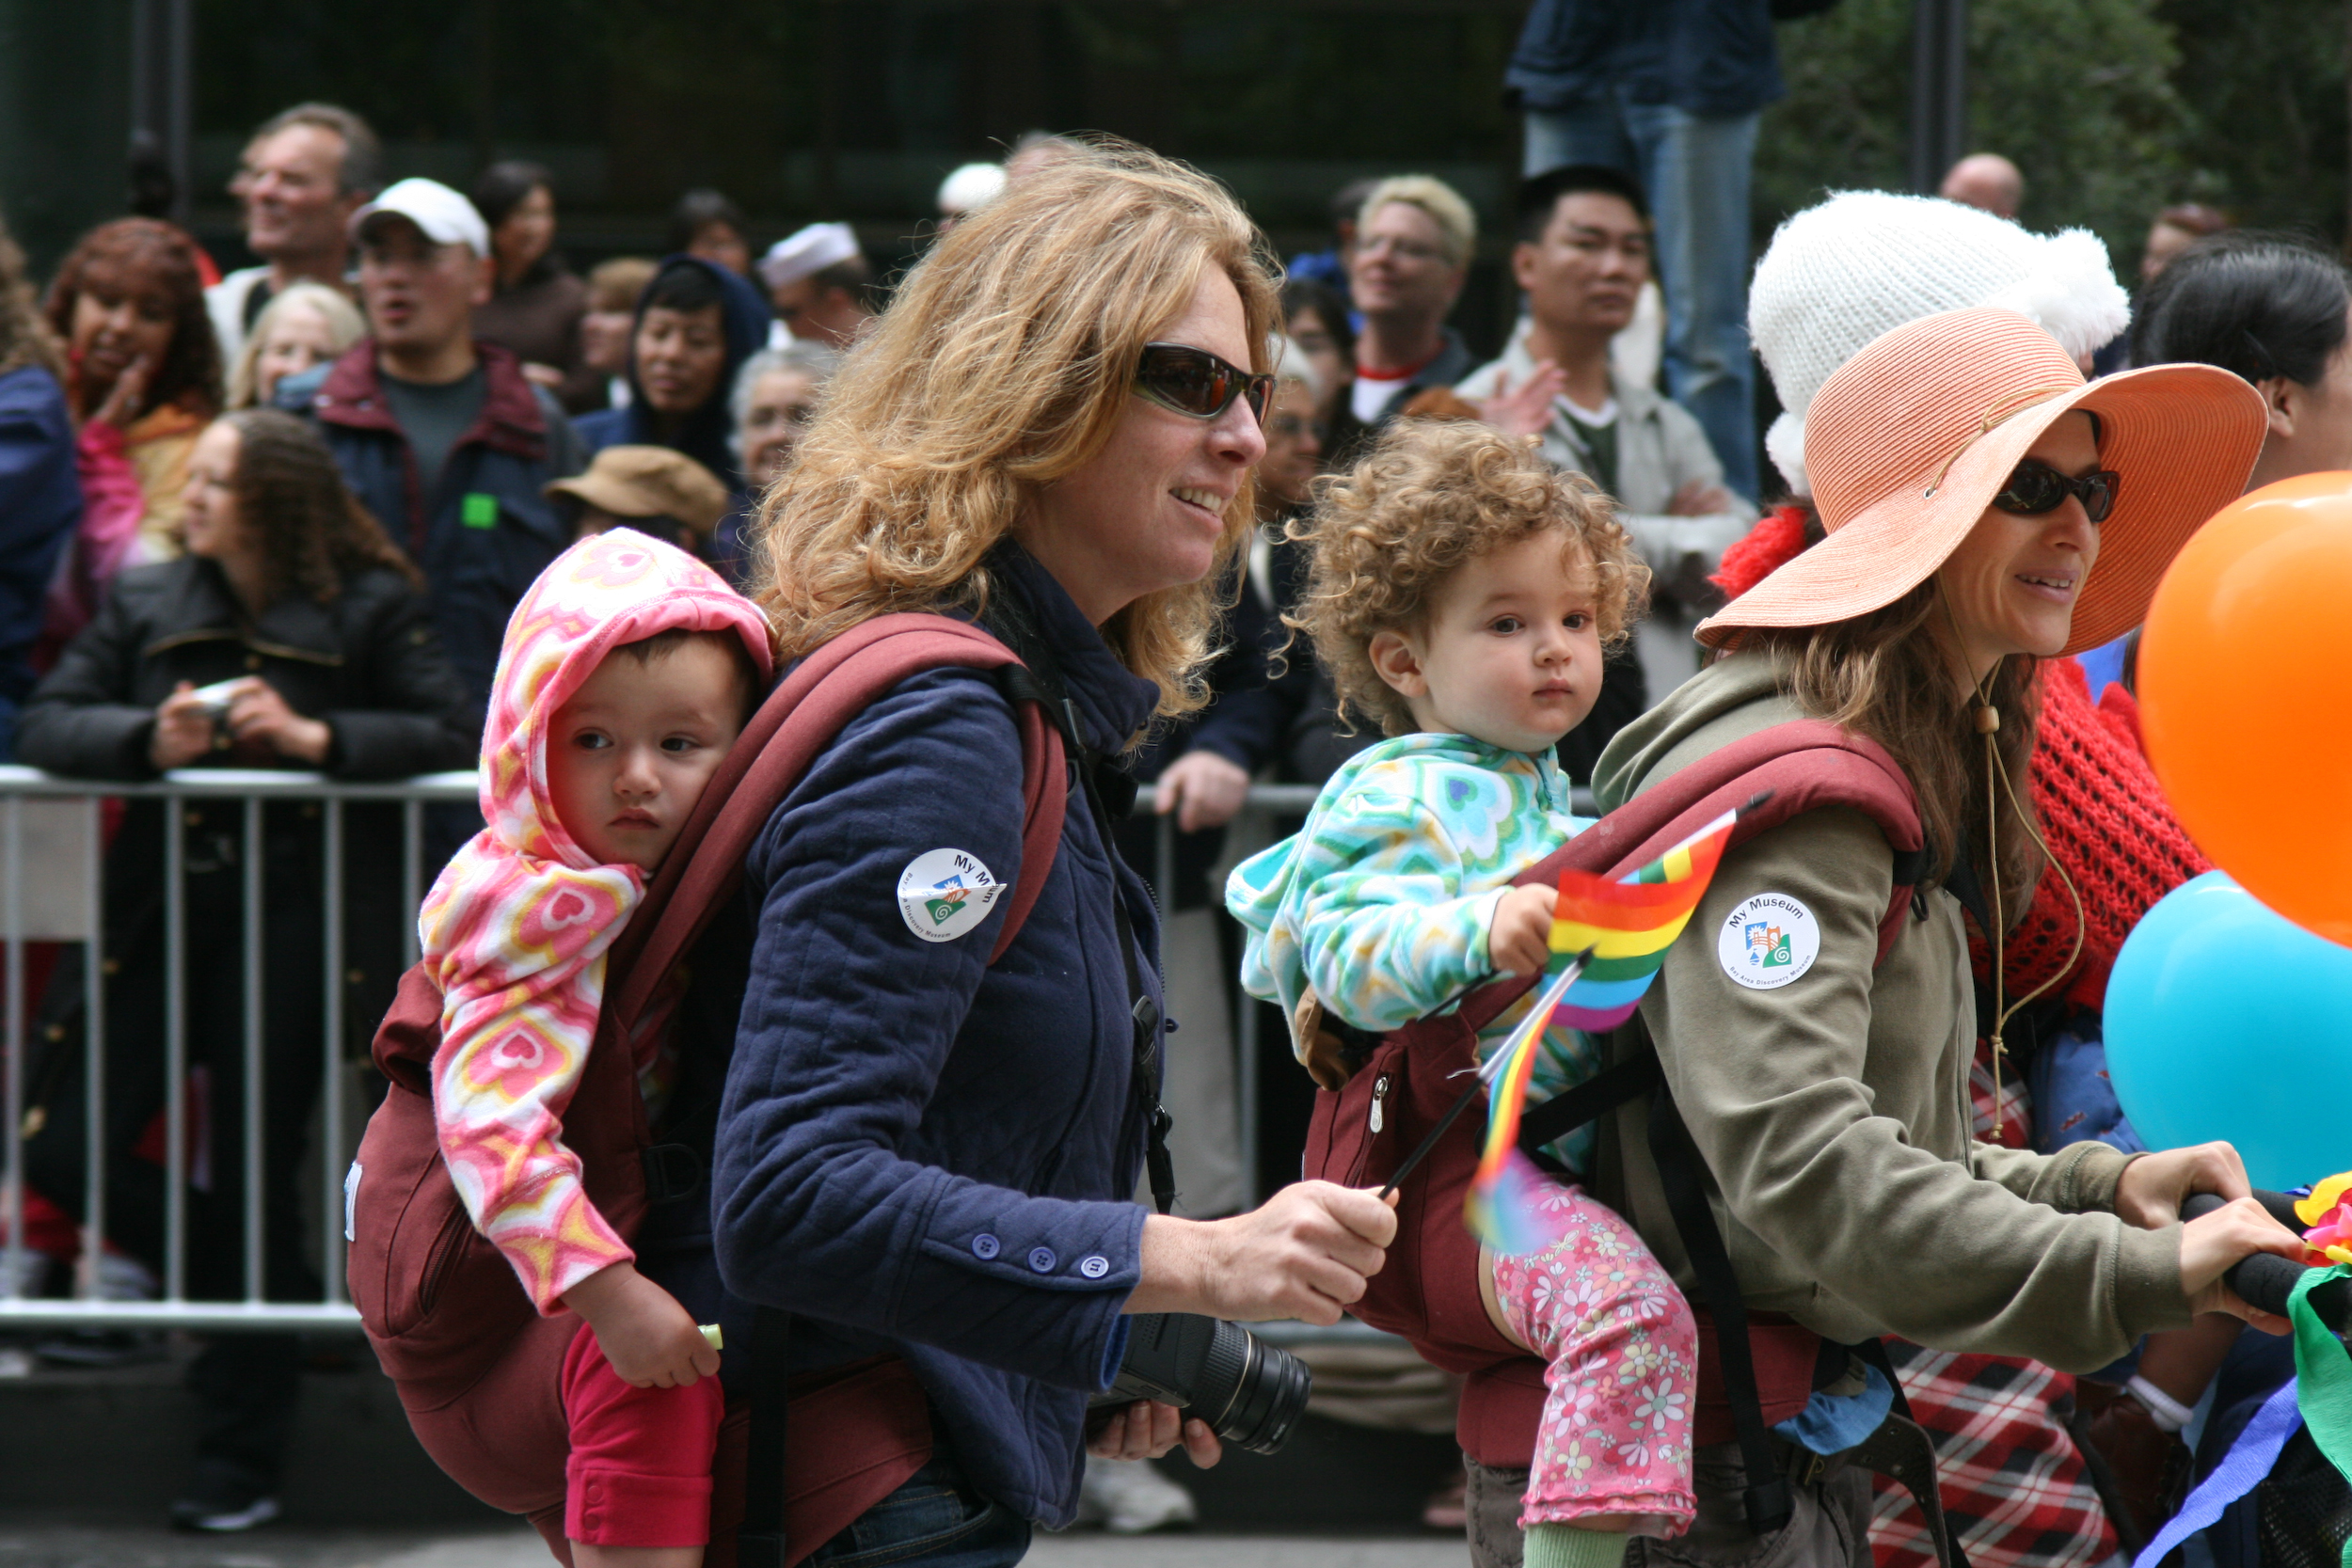 Children living with female same-sex couples have 40 percent more focused time with their parents